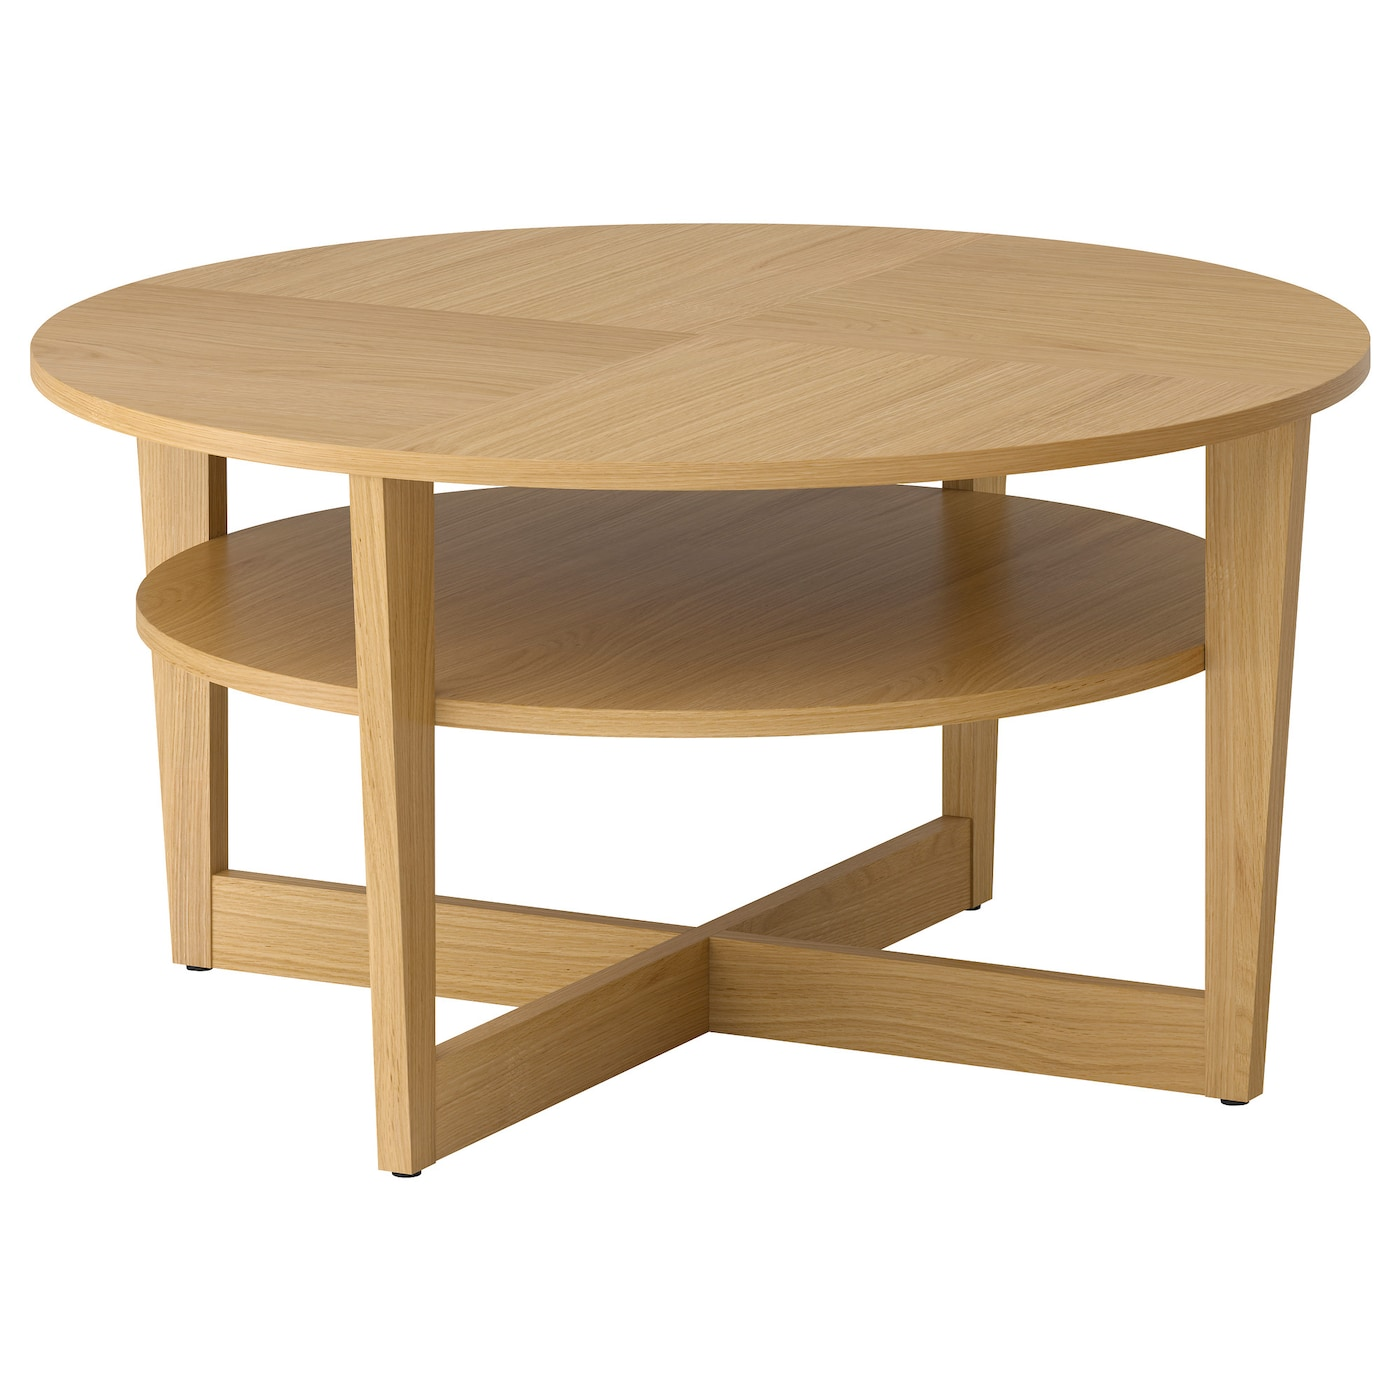 IKEA VEJMON coffee table The veneered surface is durable, stain resistant  and easy to keep